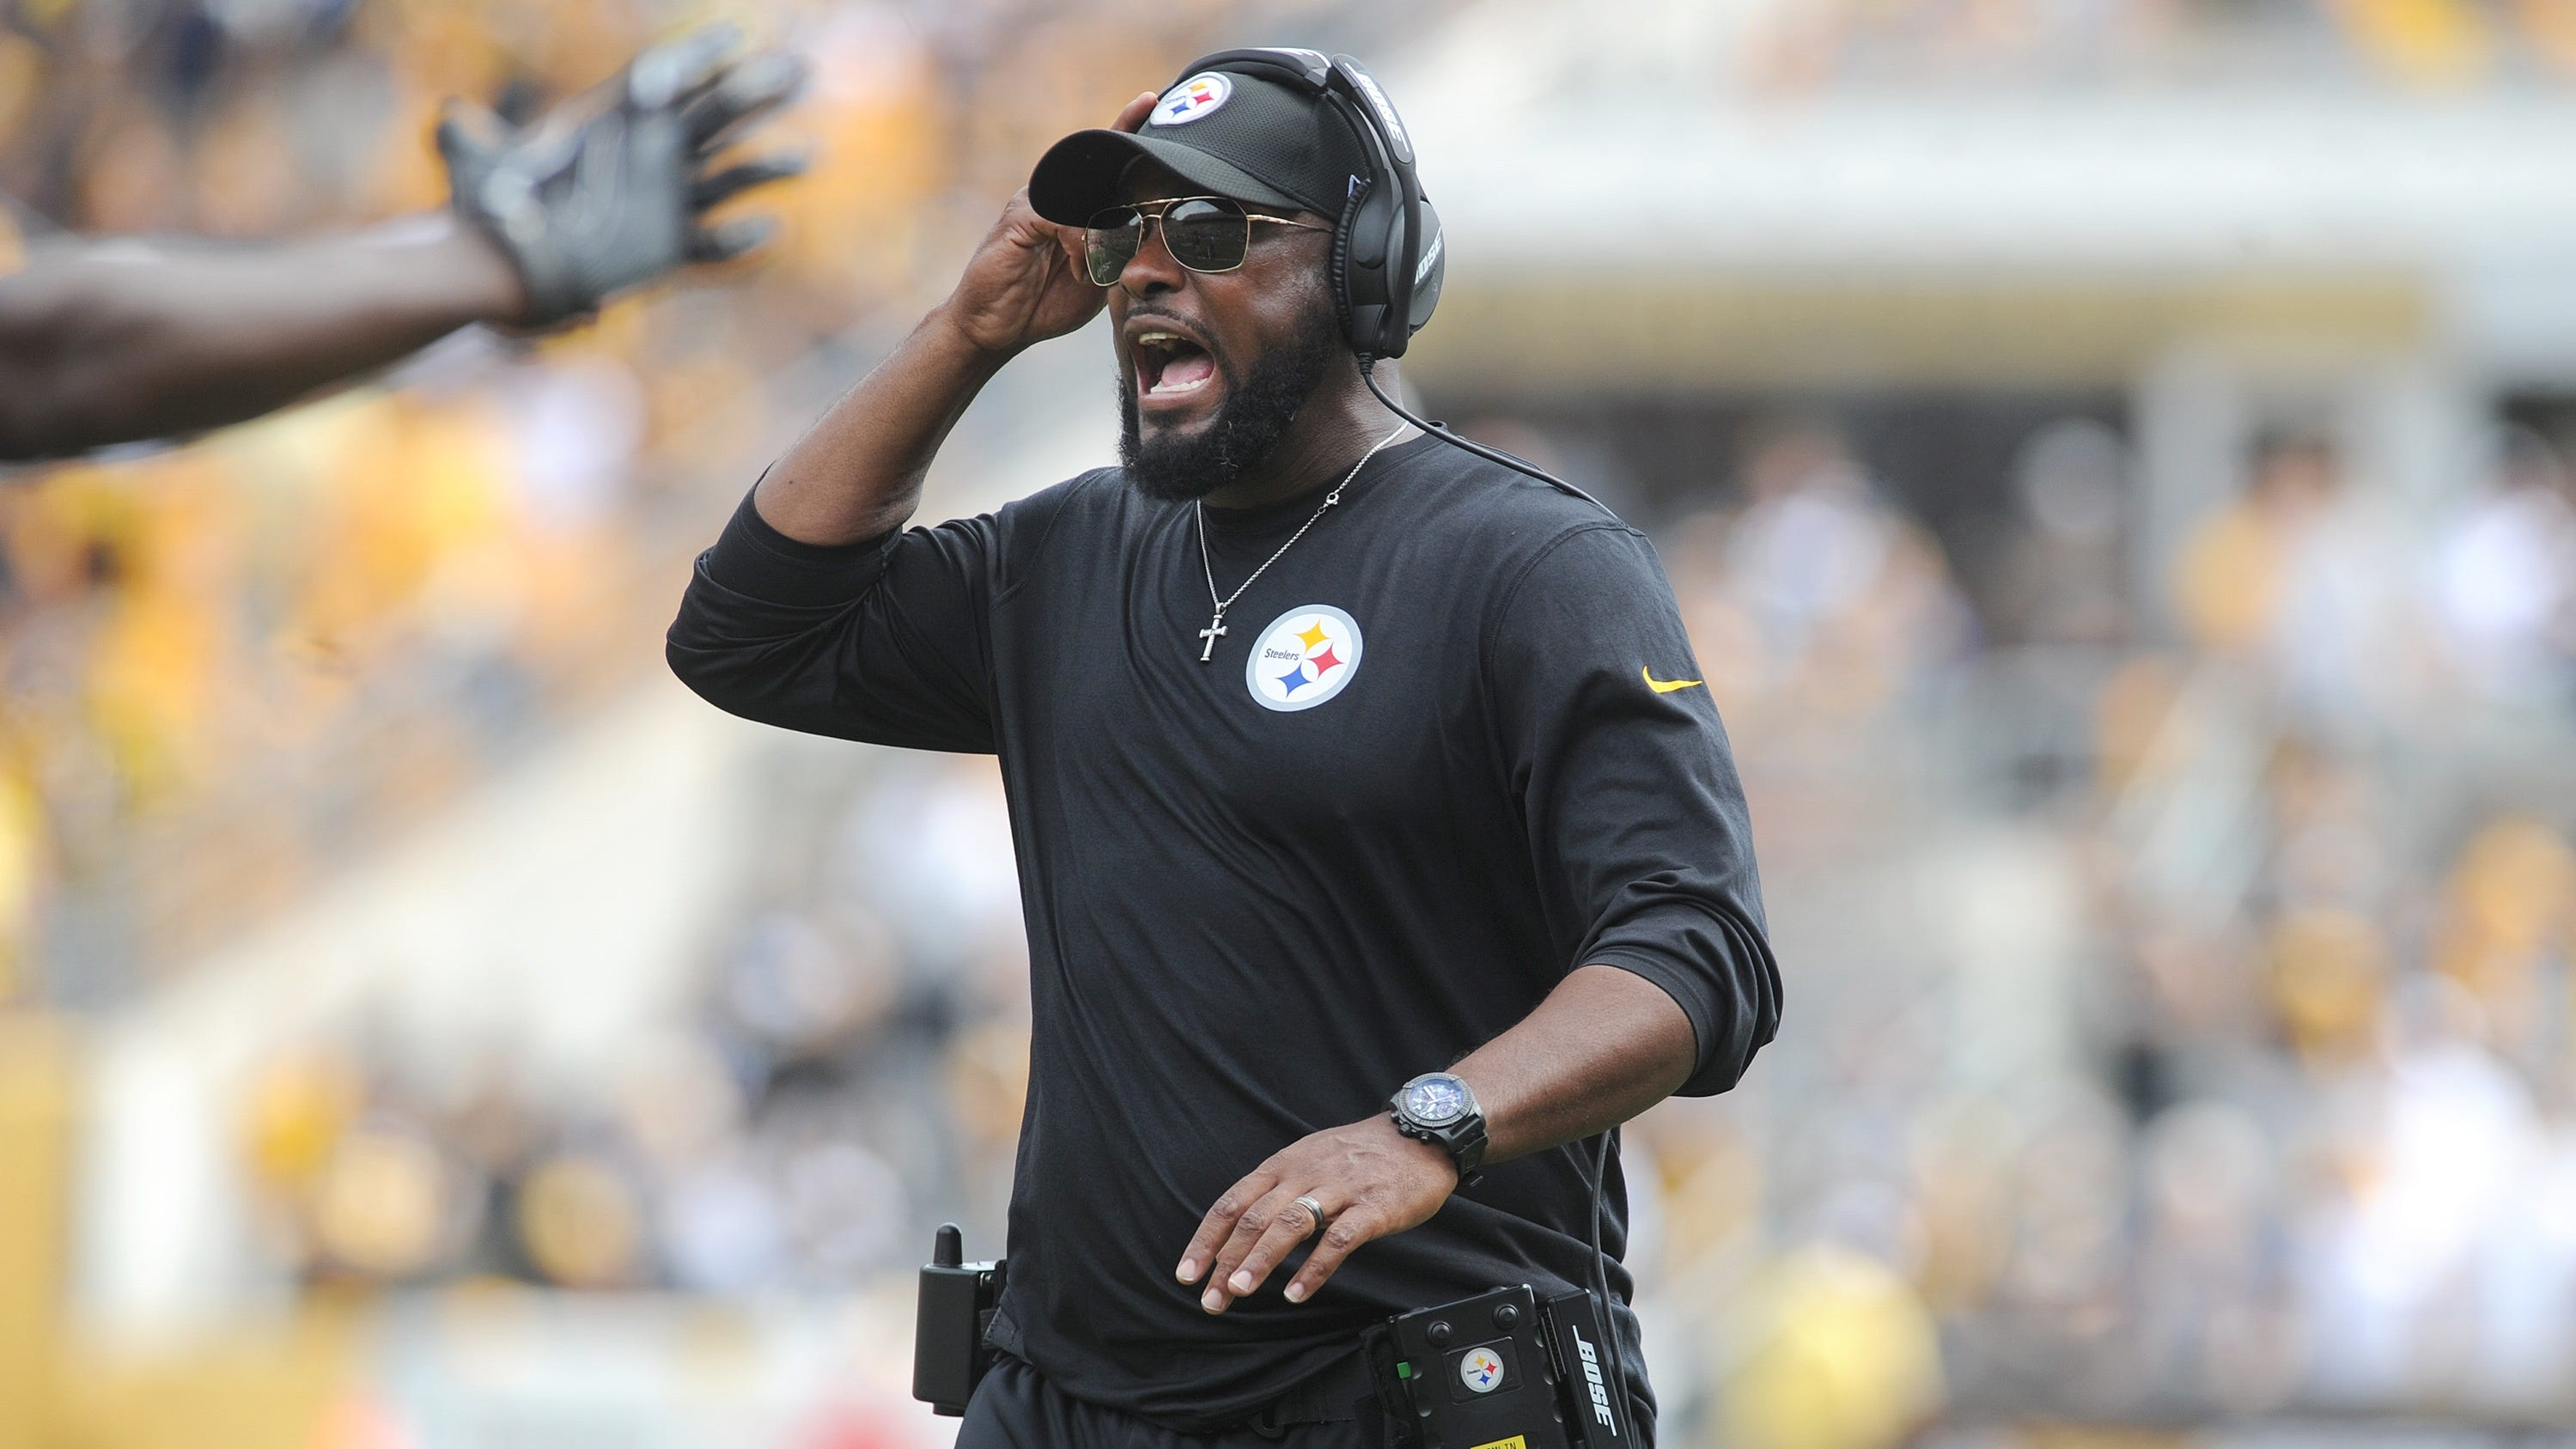 21be9973-0dba-496a-b9b0-e29b17cd99d8-2018-09-21_mike_tomlin